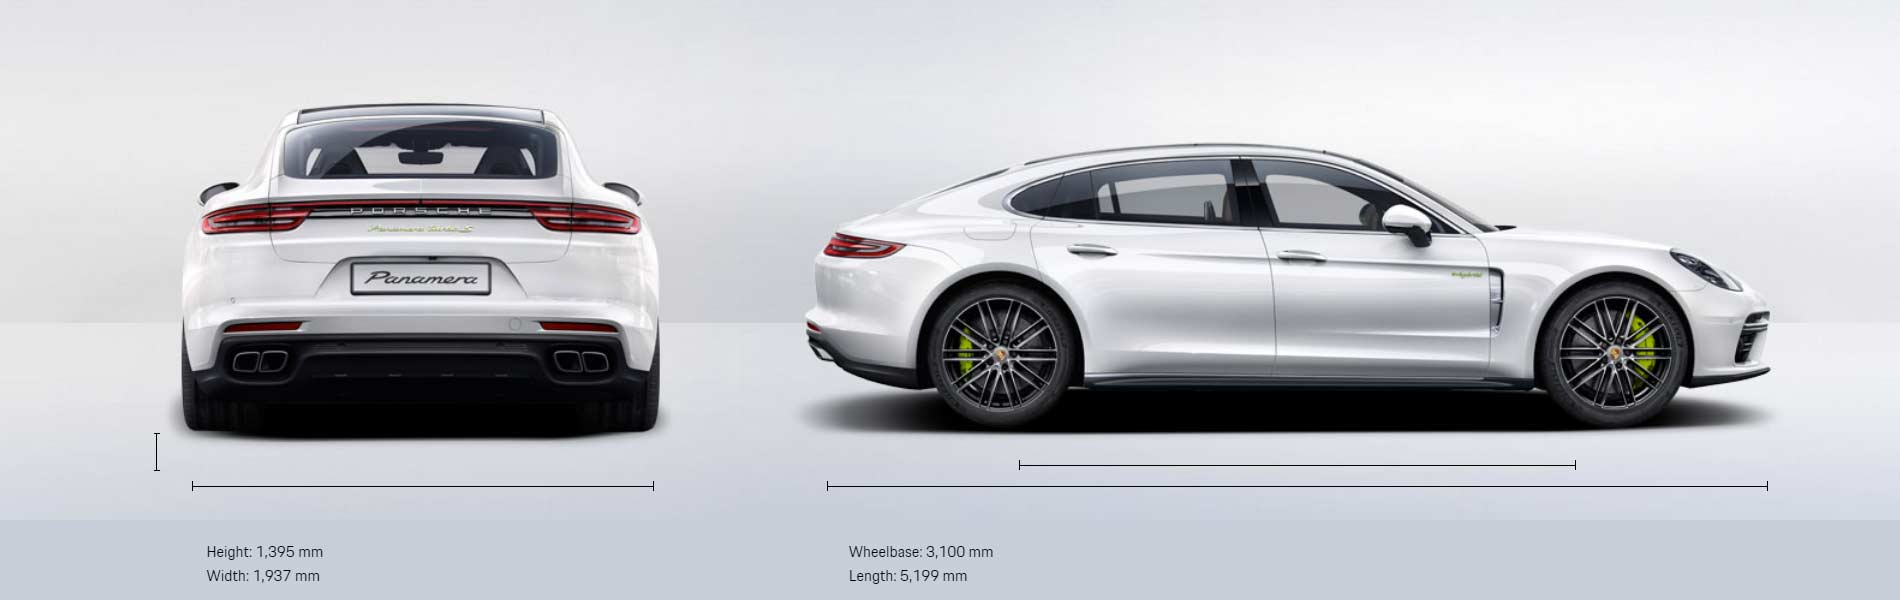 2017-Porsche-Panamera-Turbo-S-E-Hybrid-Executive